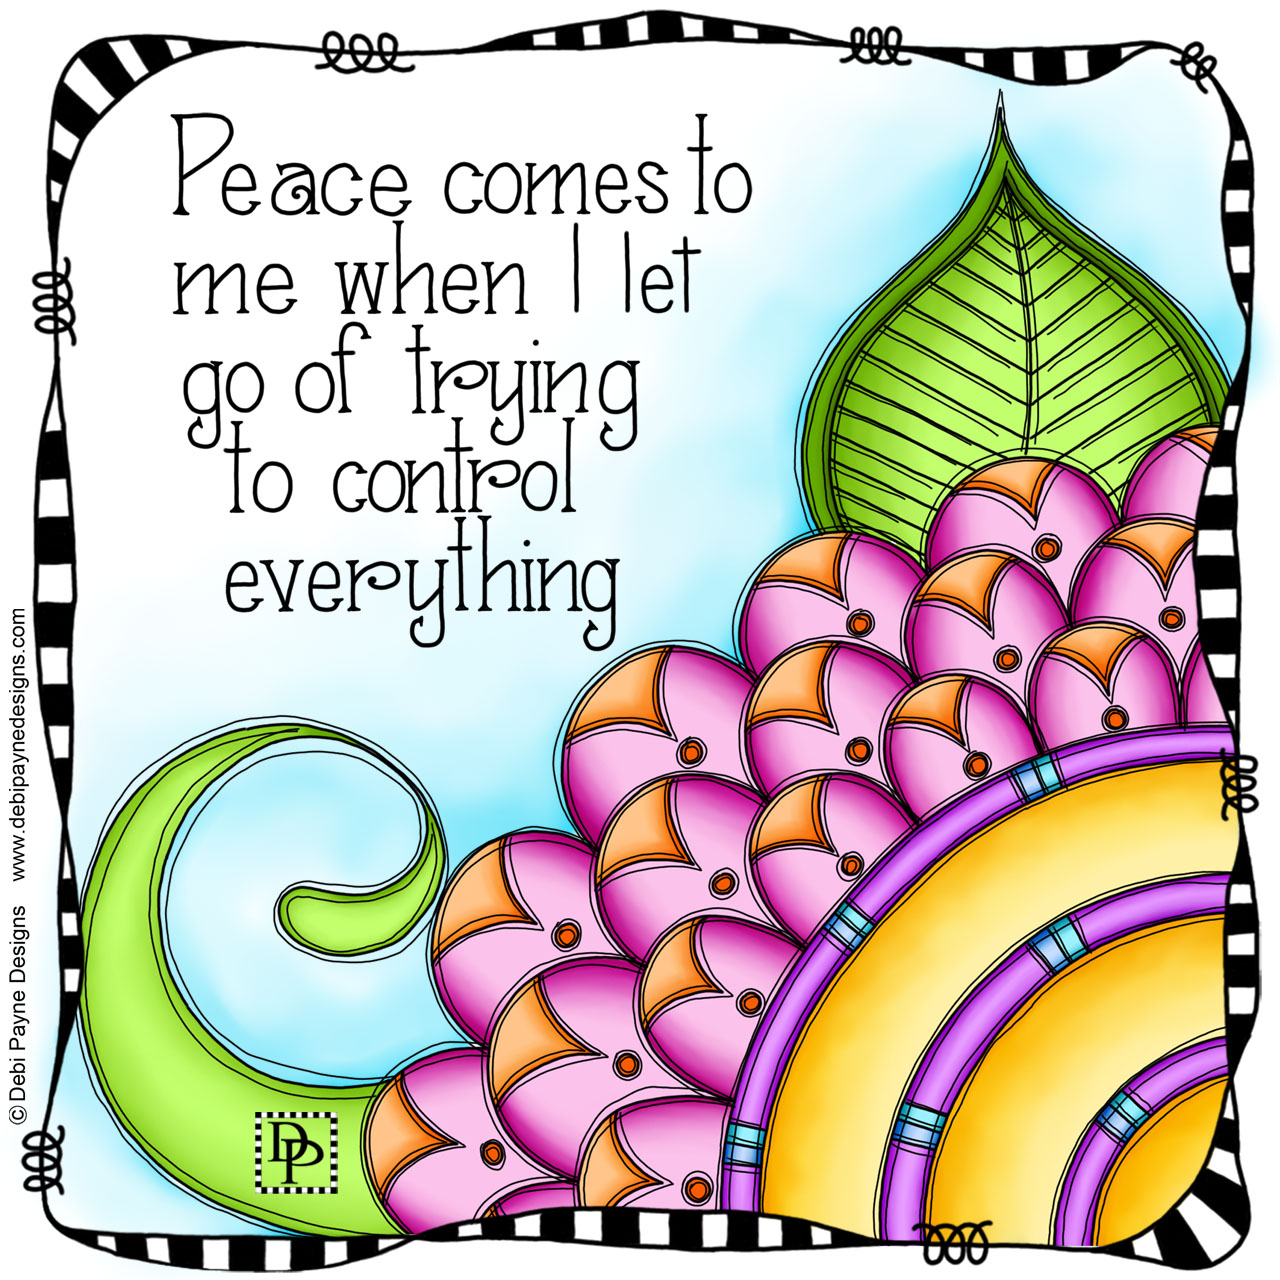 Image: Cheerful doodle flower affirmation